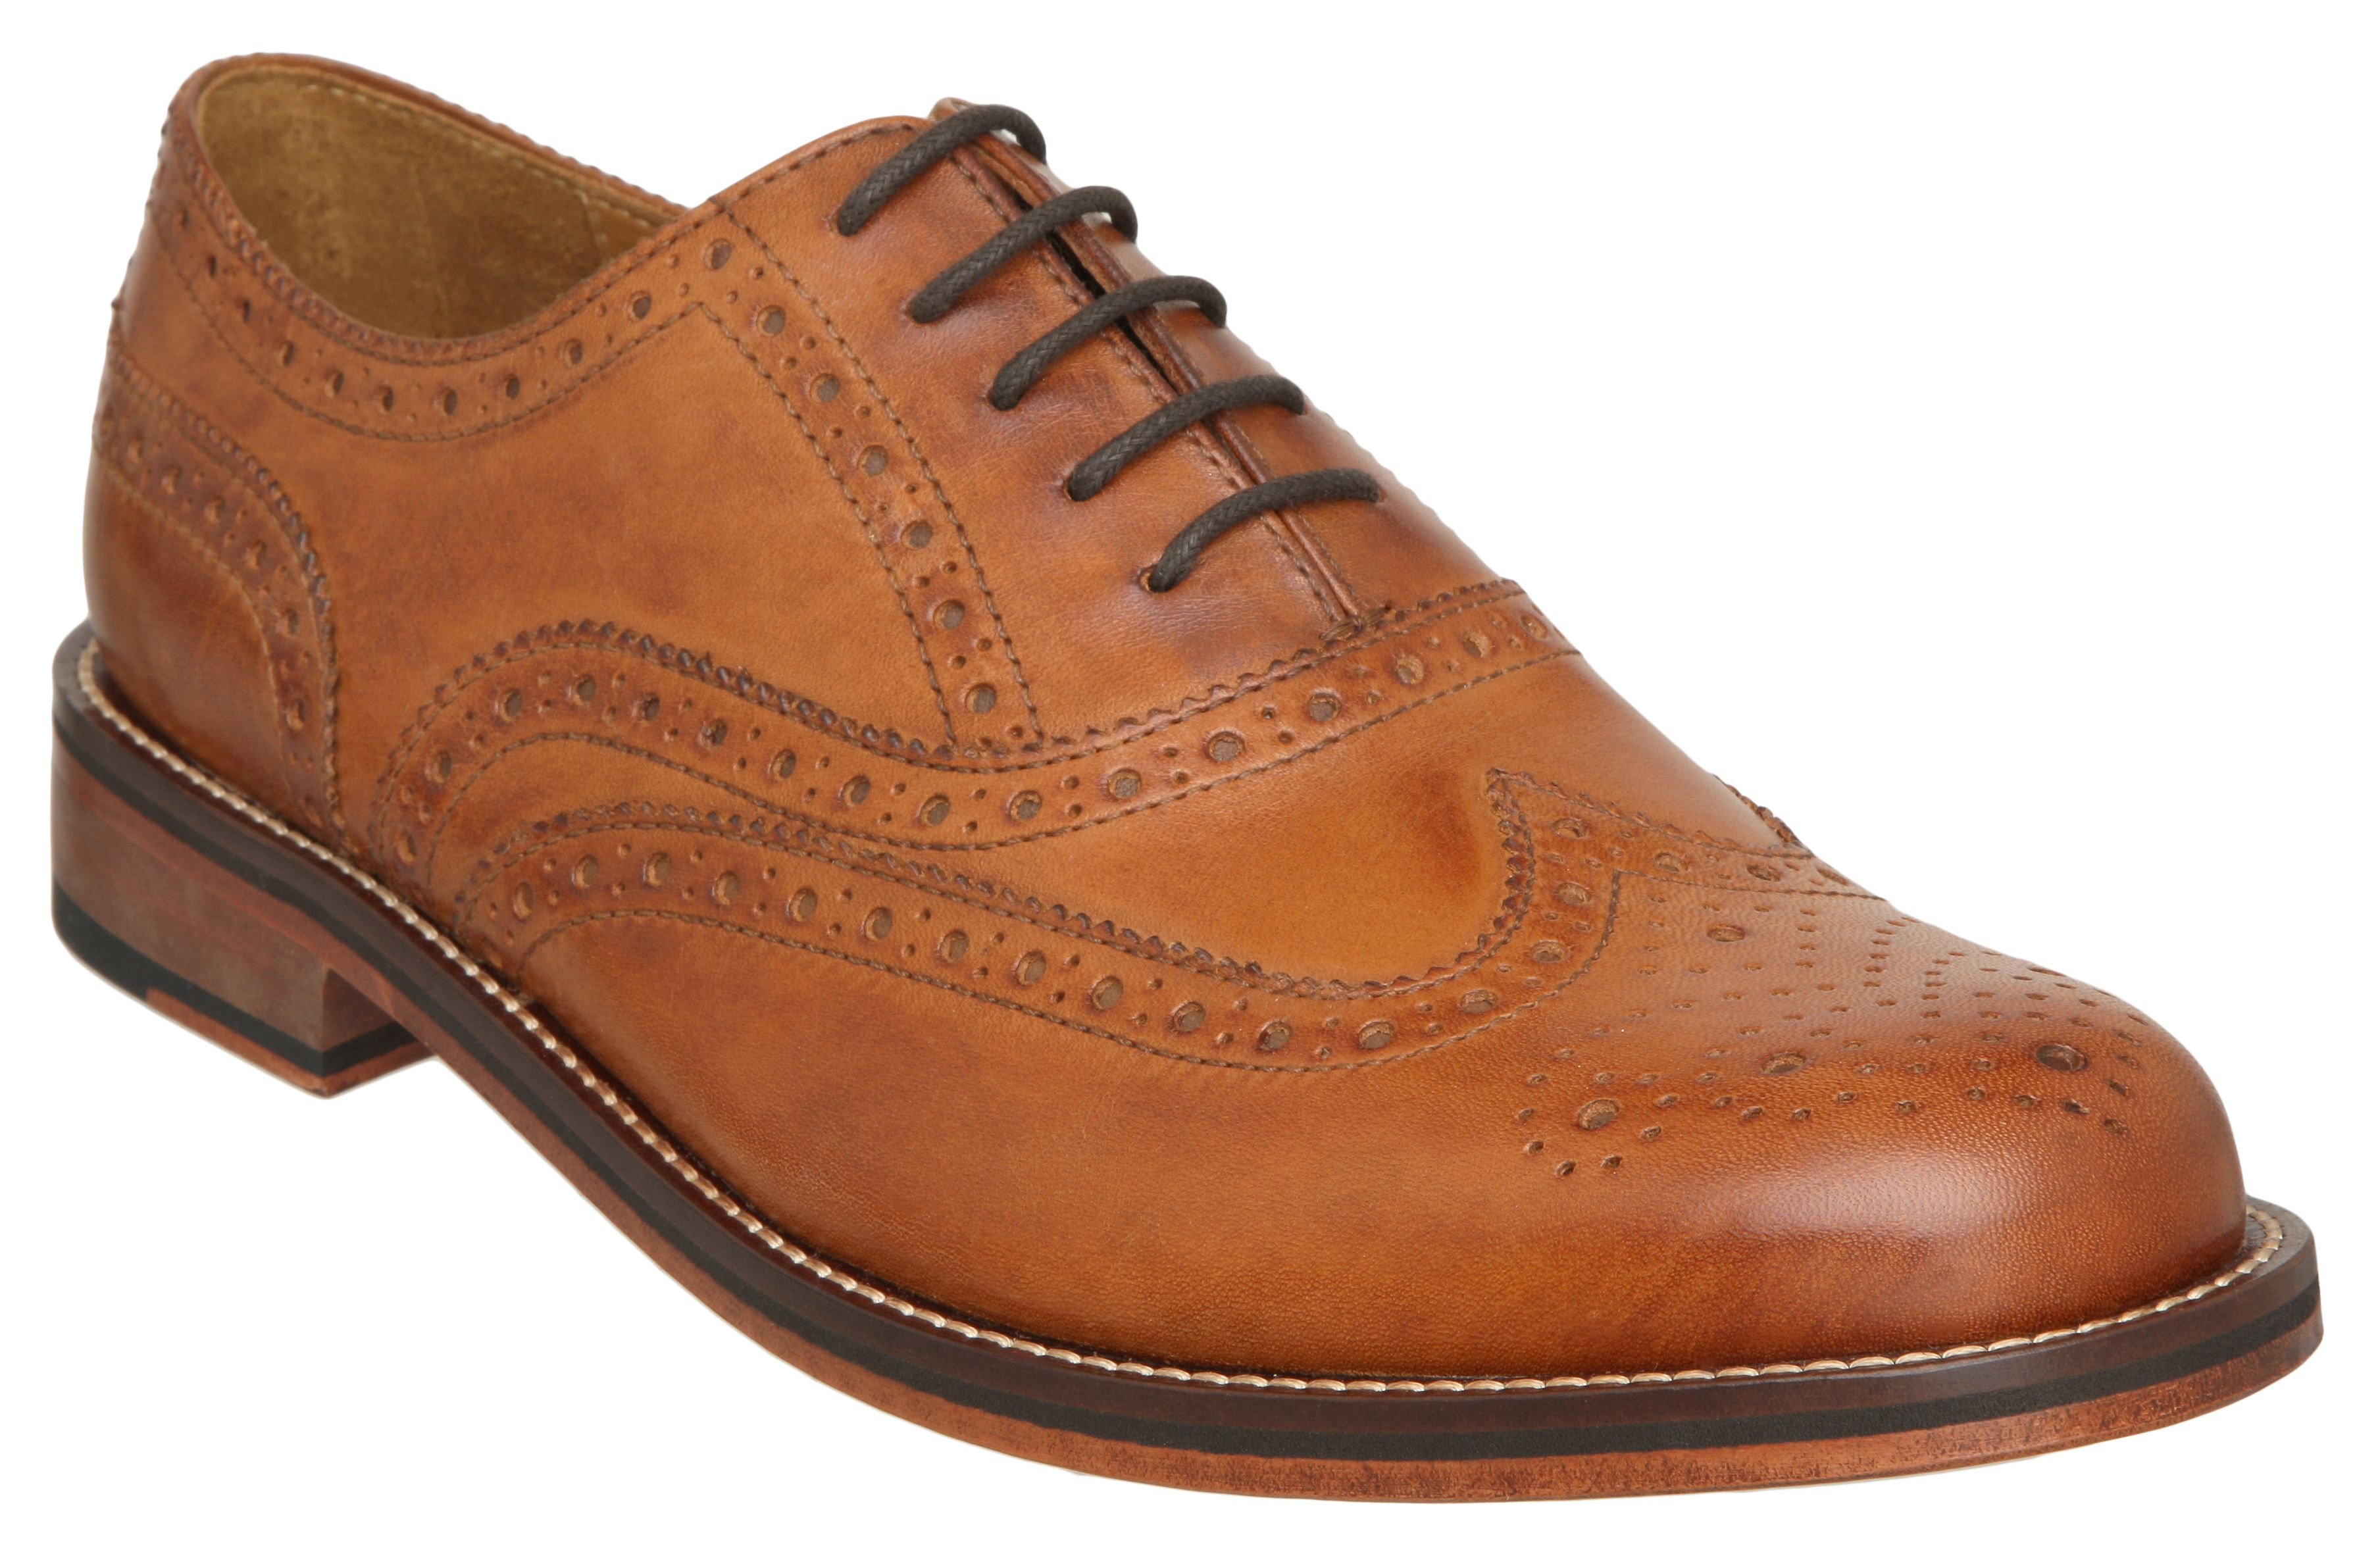 Axton formal leather brogues